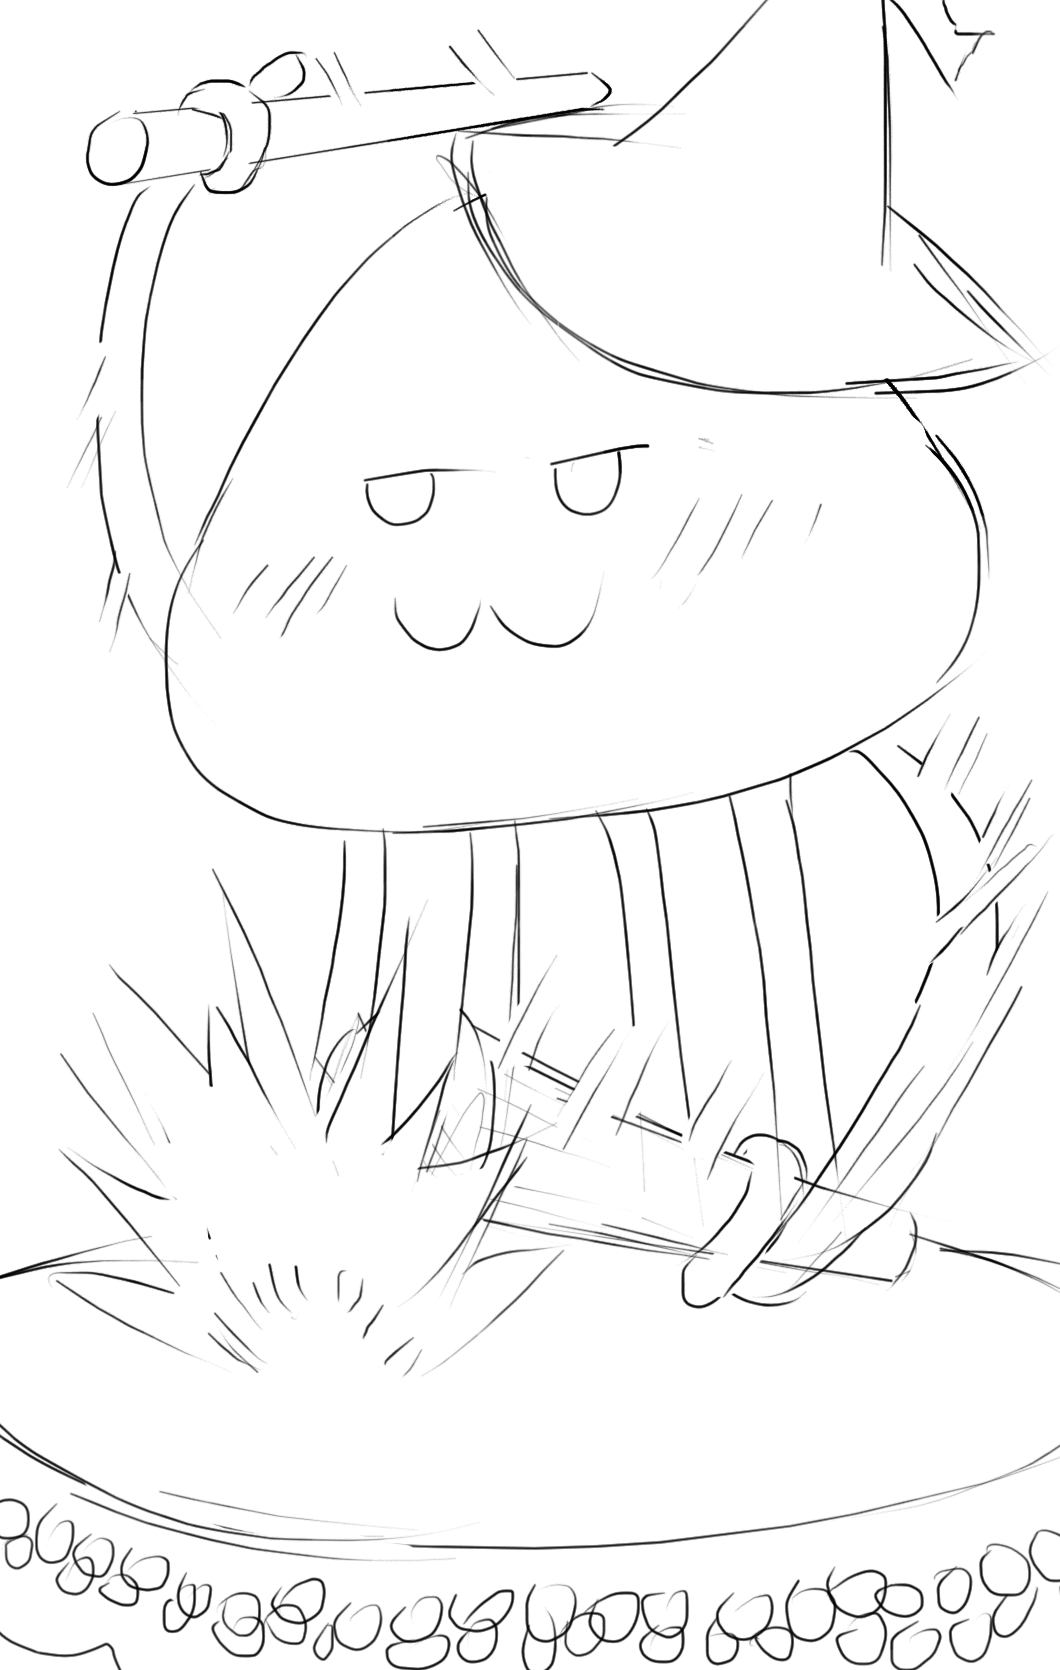 Snazzy playing Taiko